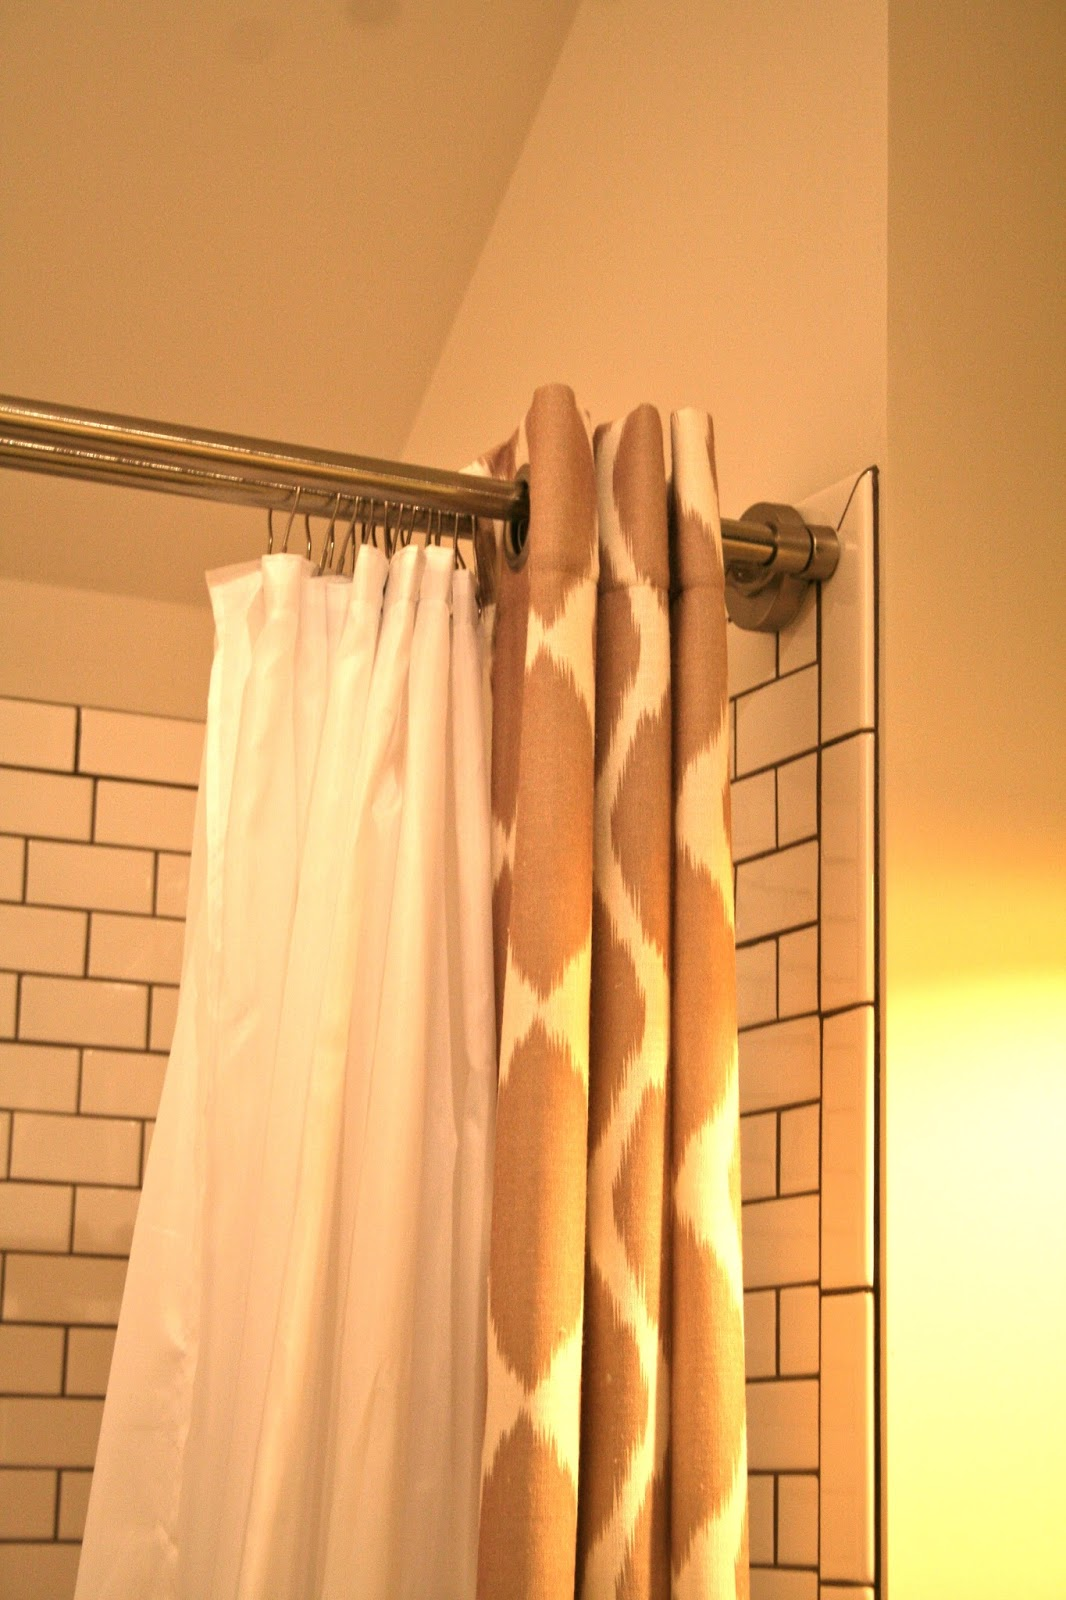 design dump: new favorite thing: double tension shower rod